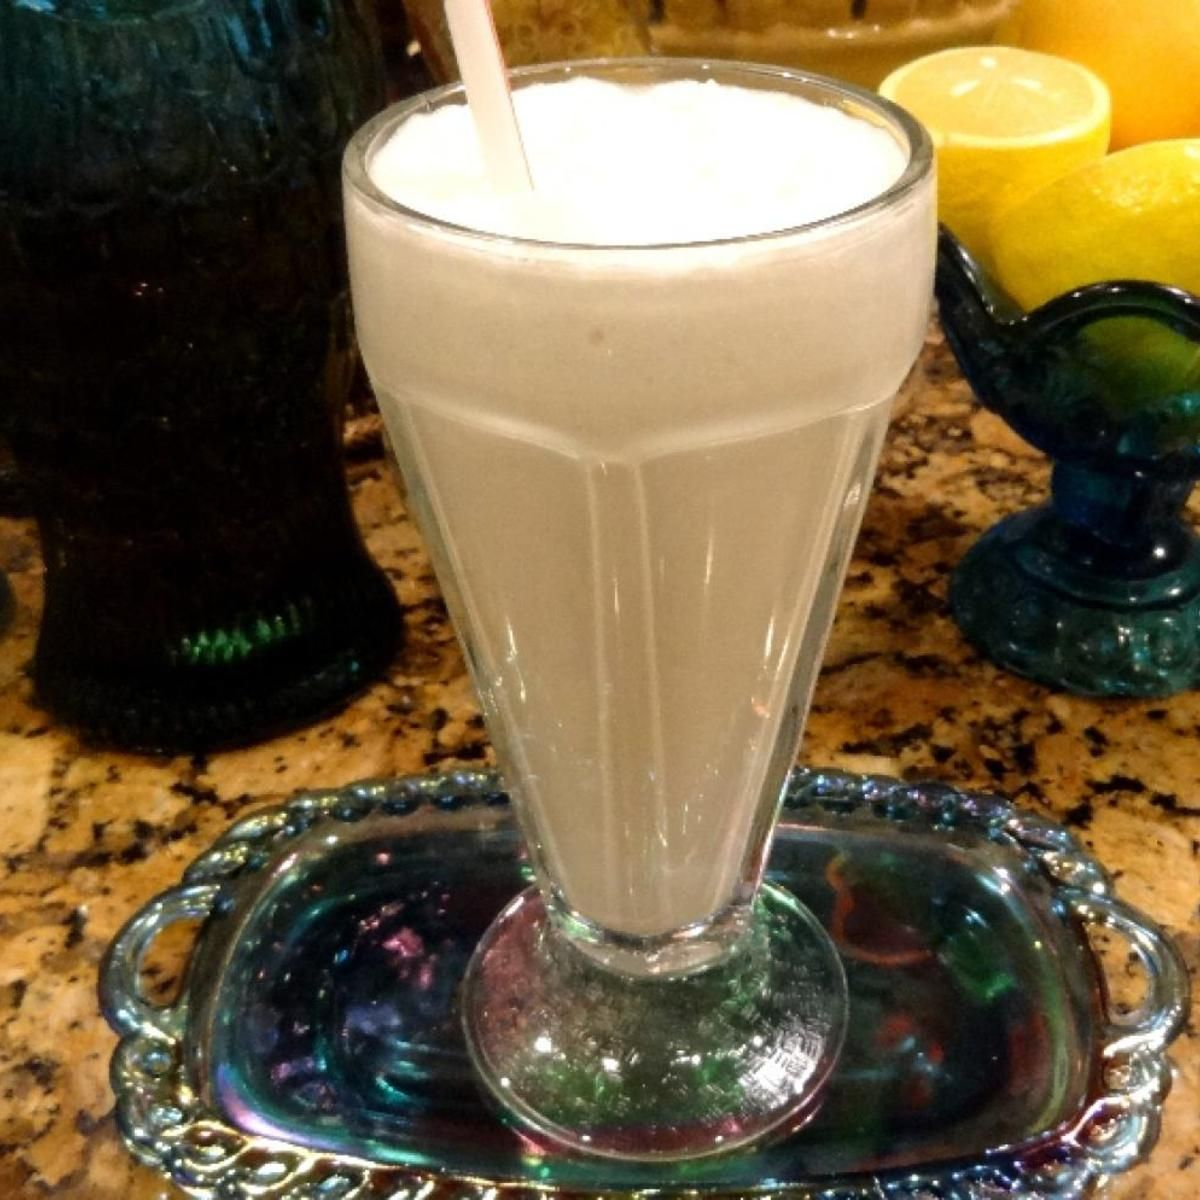 This thick and creamy milkshake is great for your  low-carb or gluten-free diet. I don't even miss ice cream anymore! I make it in my little Magic Bullet smoothie maker.  What a neat machine that is.  It makes the greatest milkshakes and comes with an attachment to grind nuts